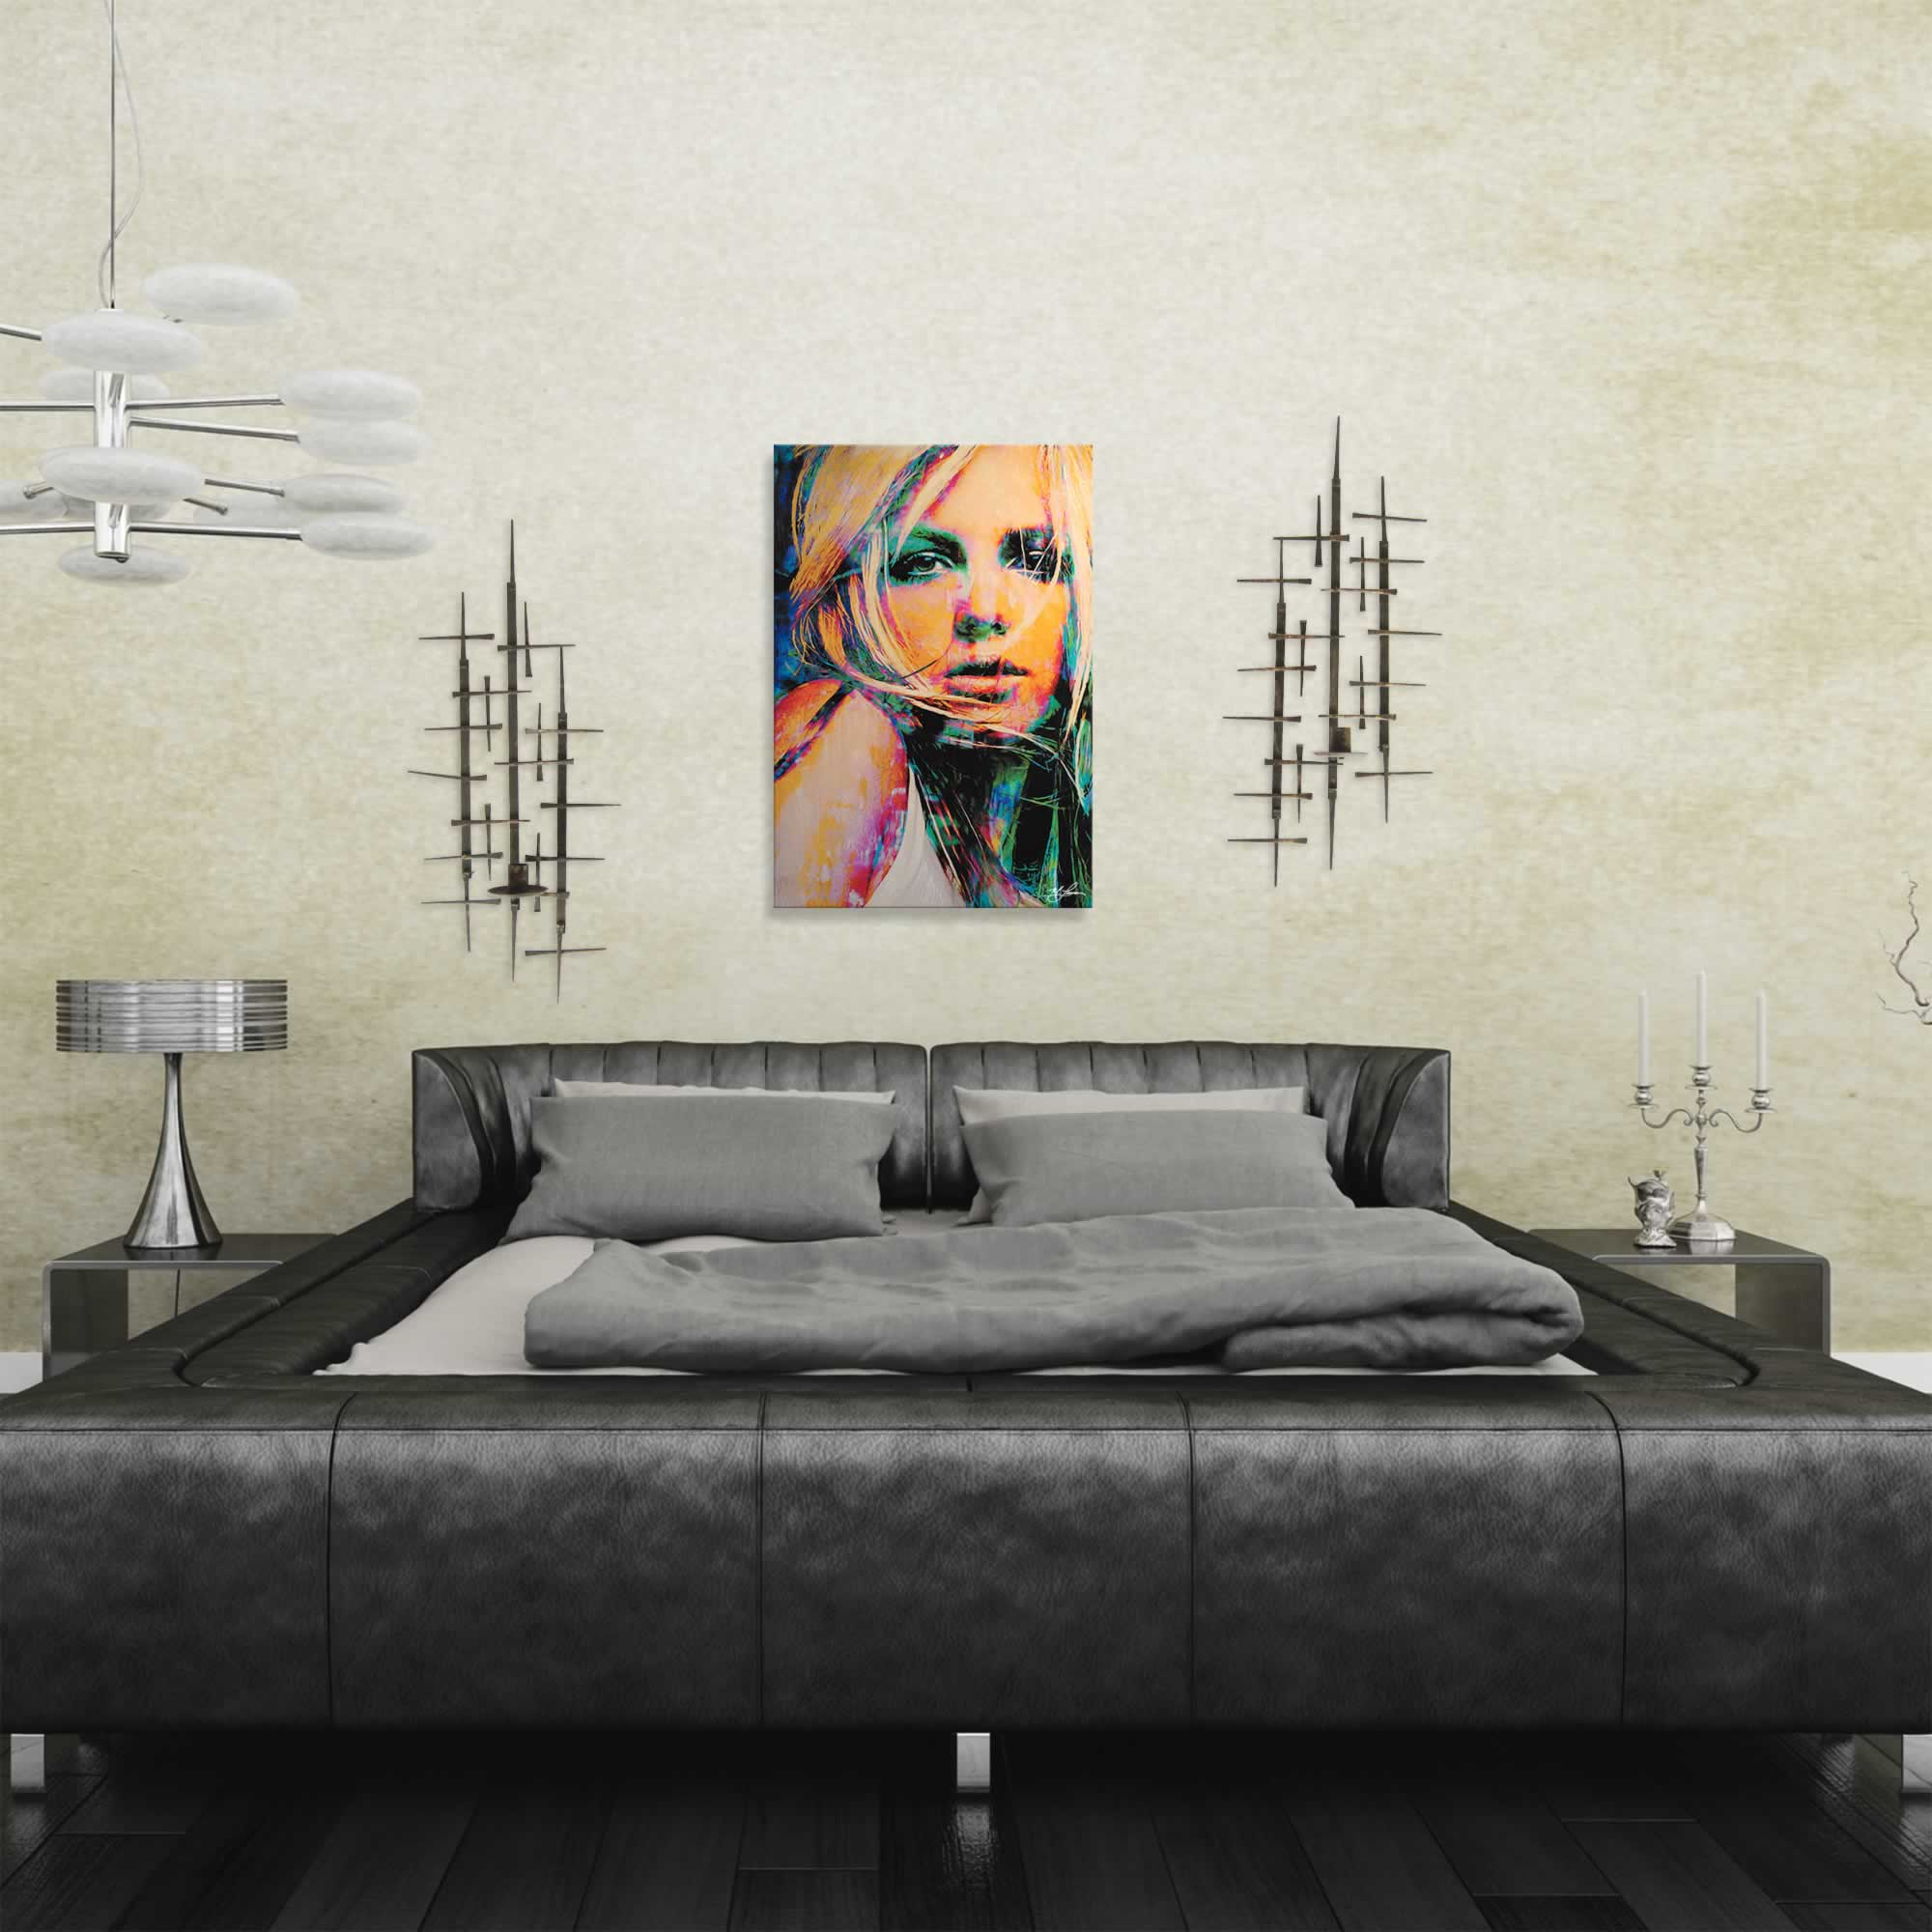 Mark Lewis 'Britney Spears Snow Blind' Limited Edition Pop Art Print on Metal or Acrylic - Alternate View 1